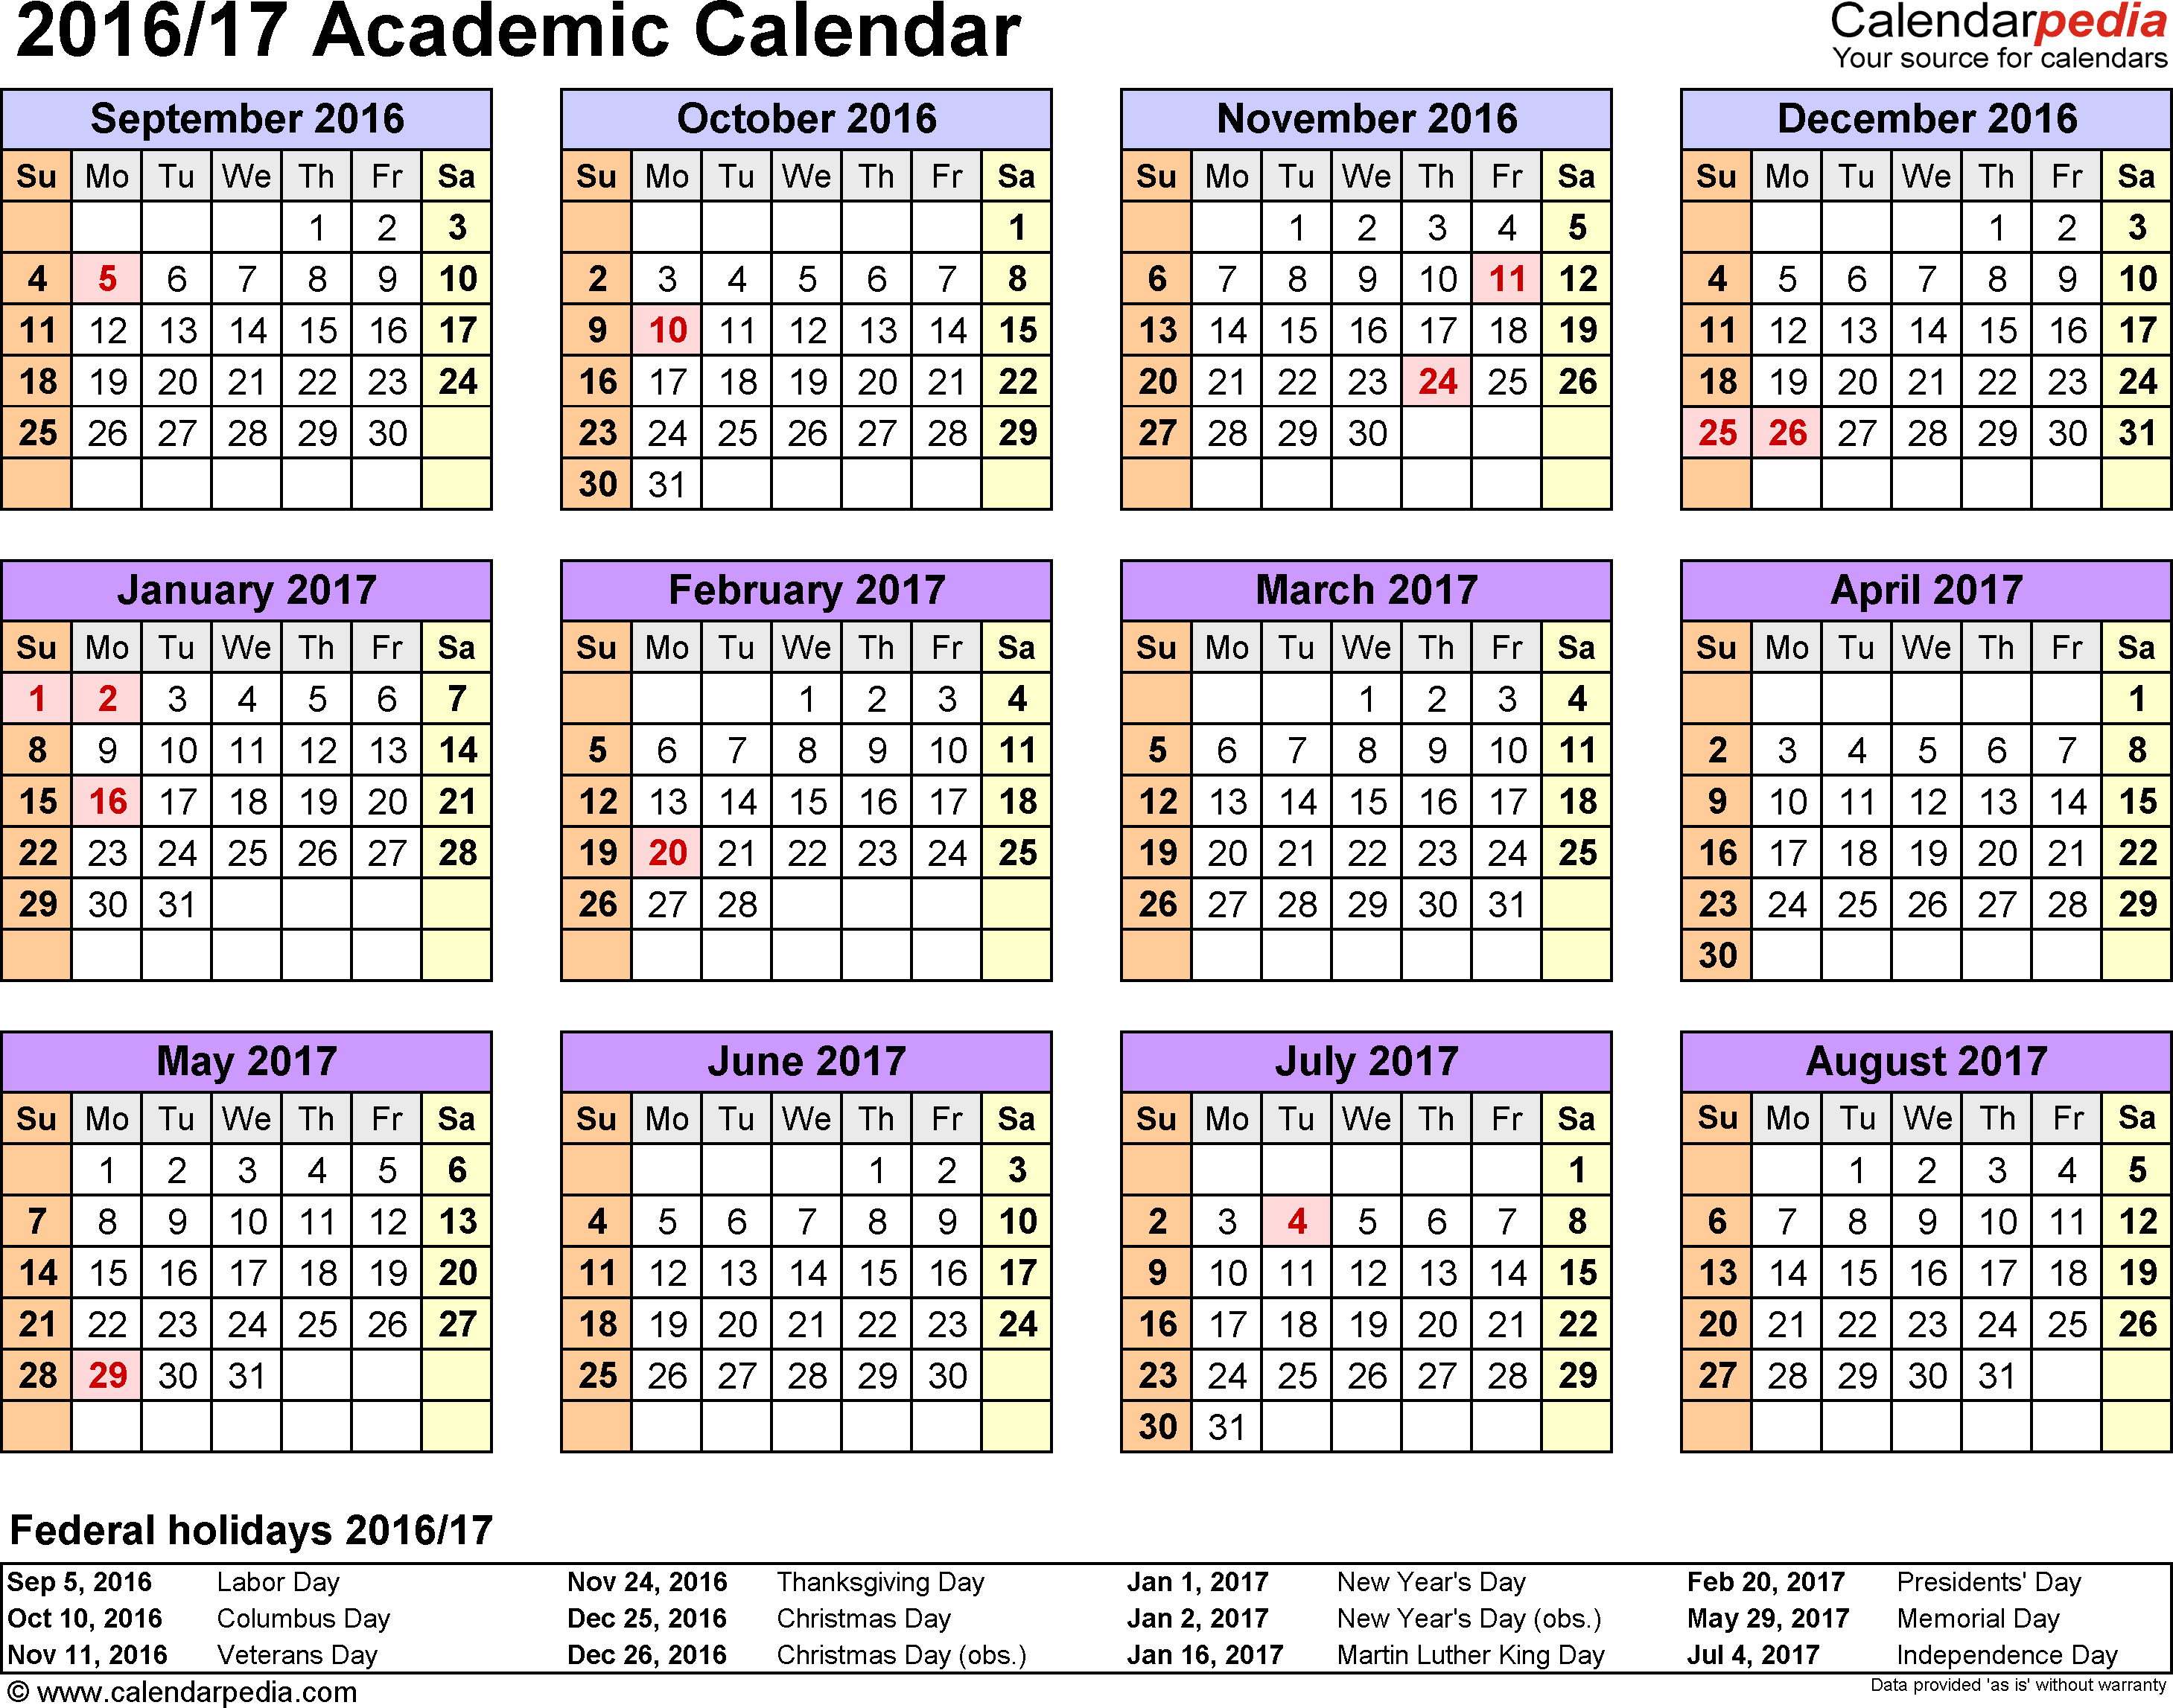 Template 4: Academic calendar 2016/17 for PDF, landscape orientation, year at a glance, 1 page